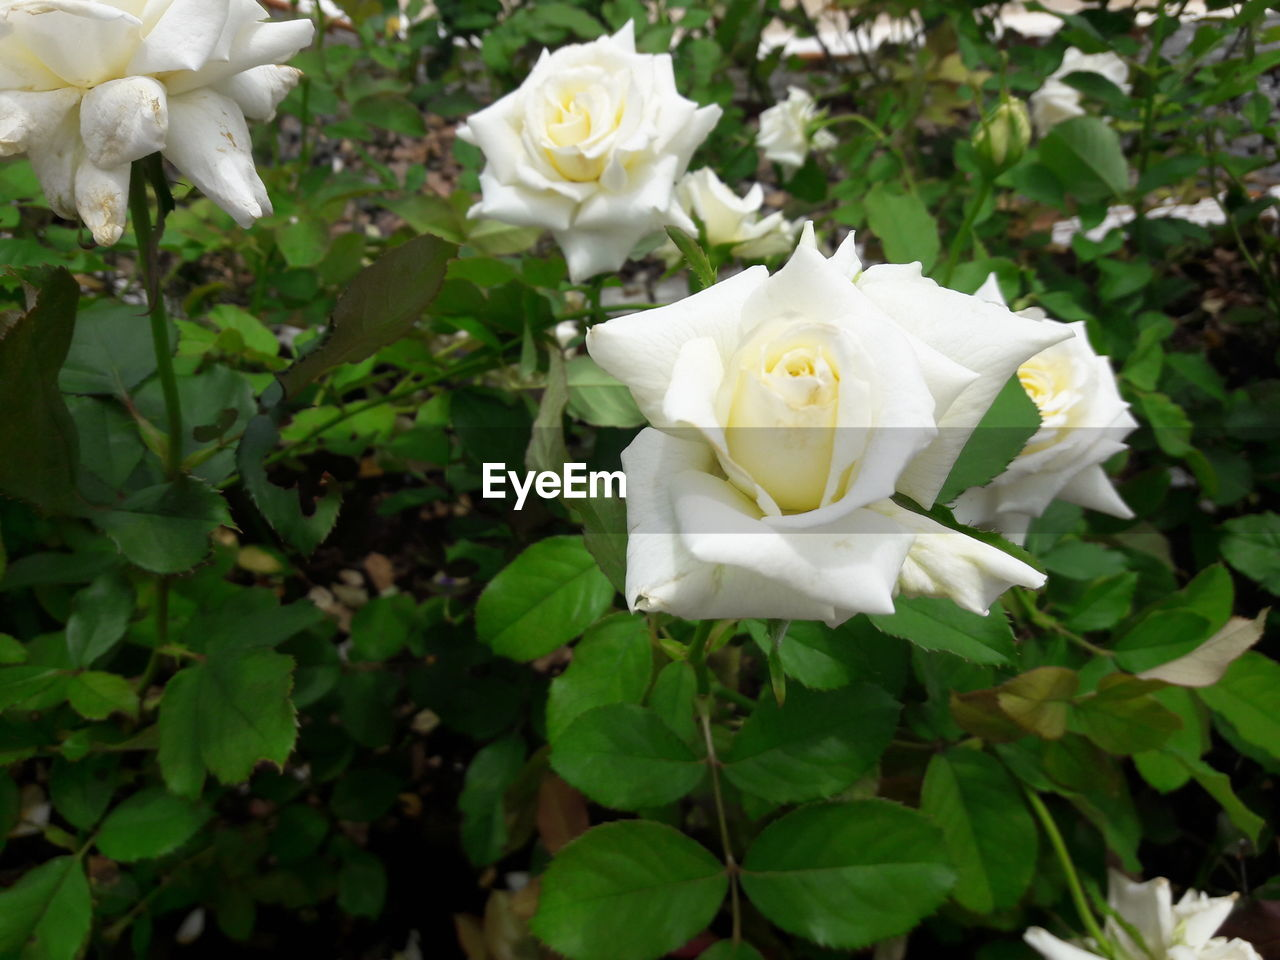 flower, petal, white color, rose - flower, nature, fragility, growth, flower head, plant, beauty in nature, blooming, freshness, leaf, close-up, no people, outdoors, day